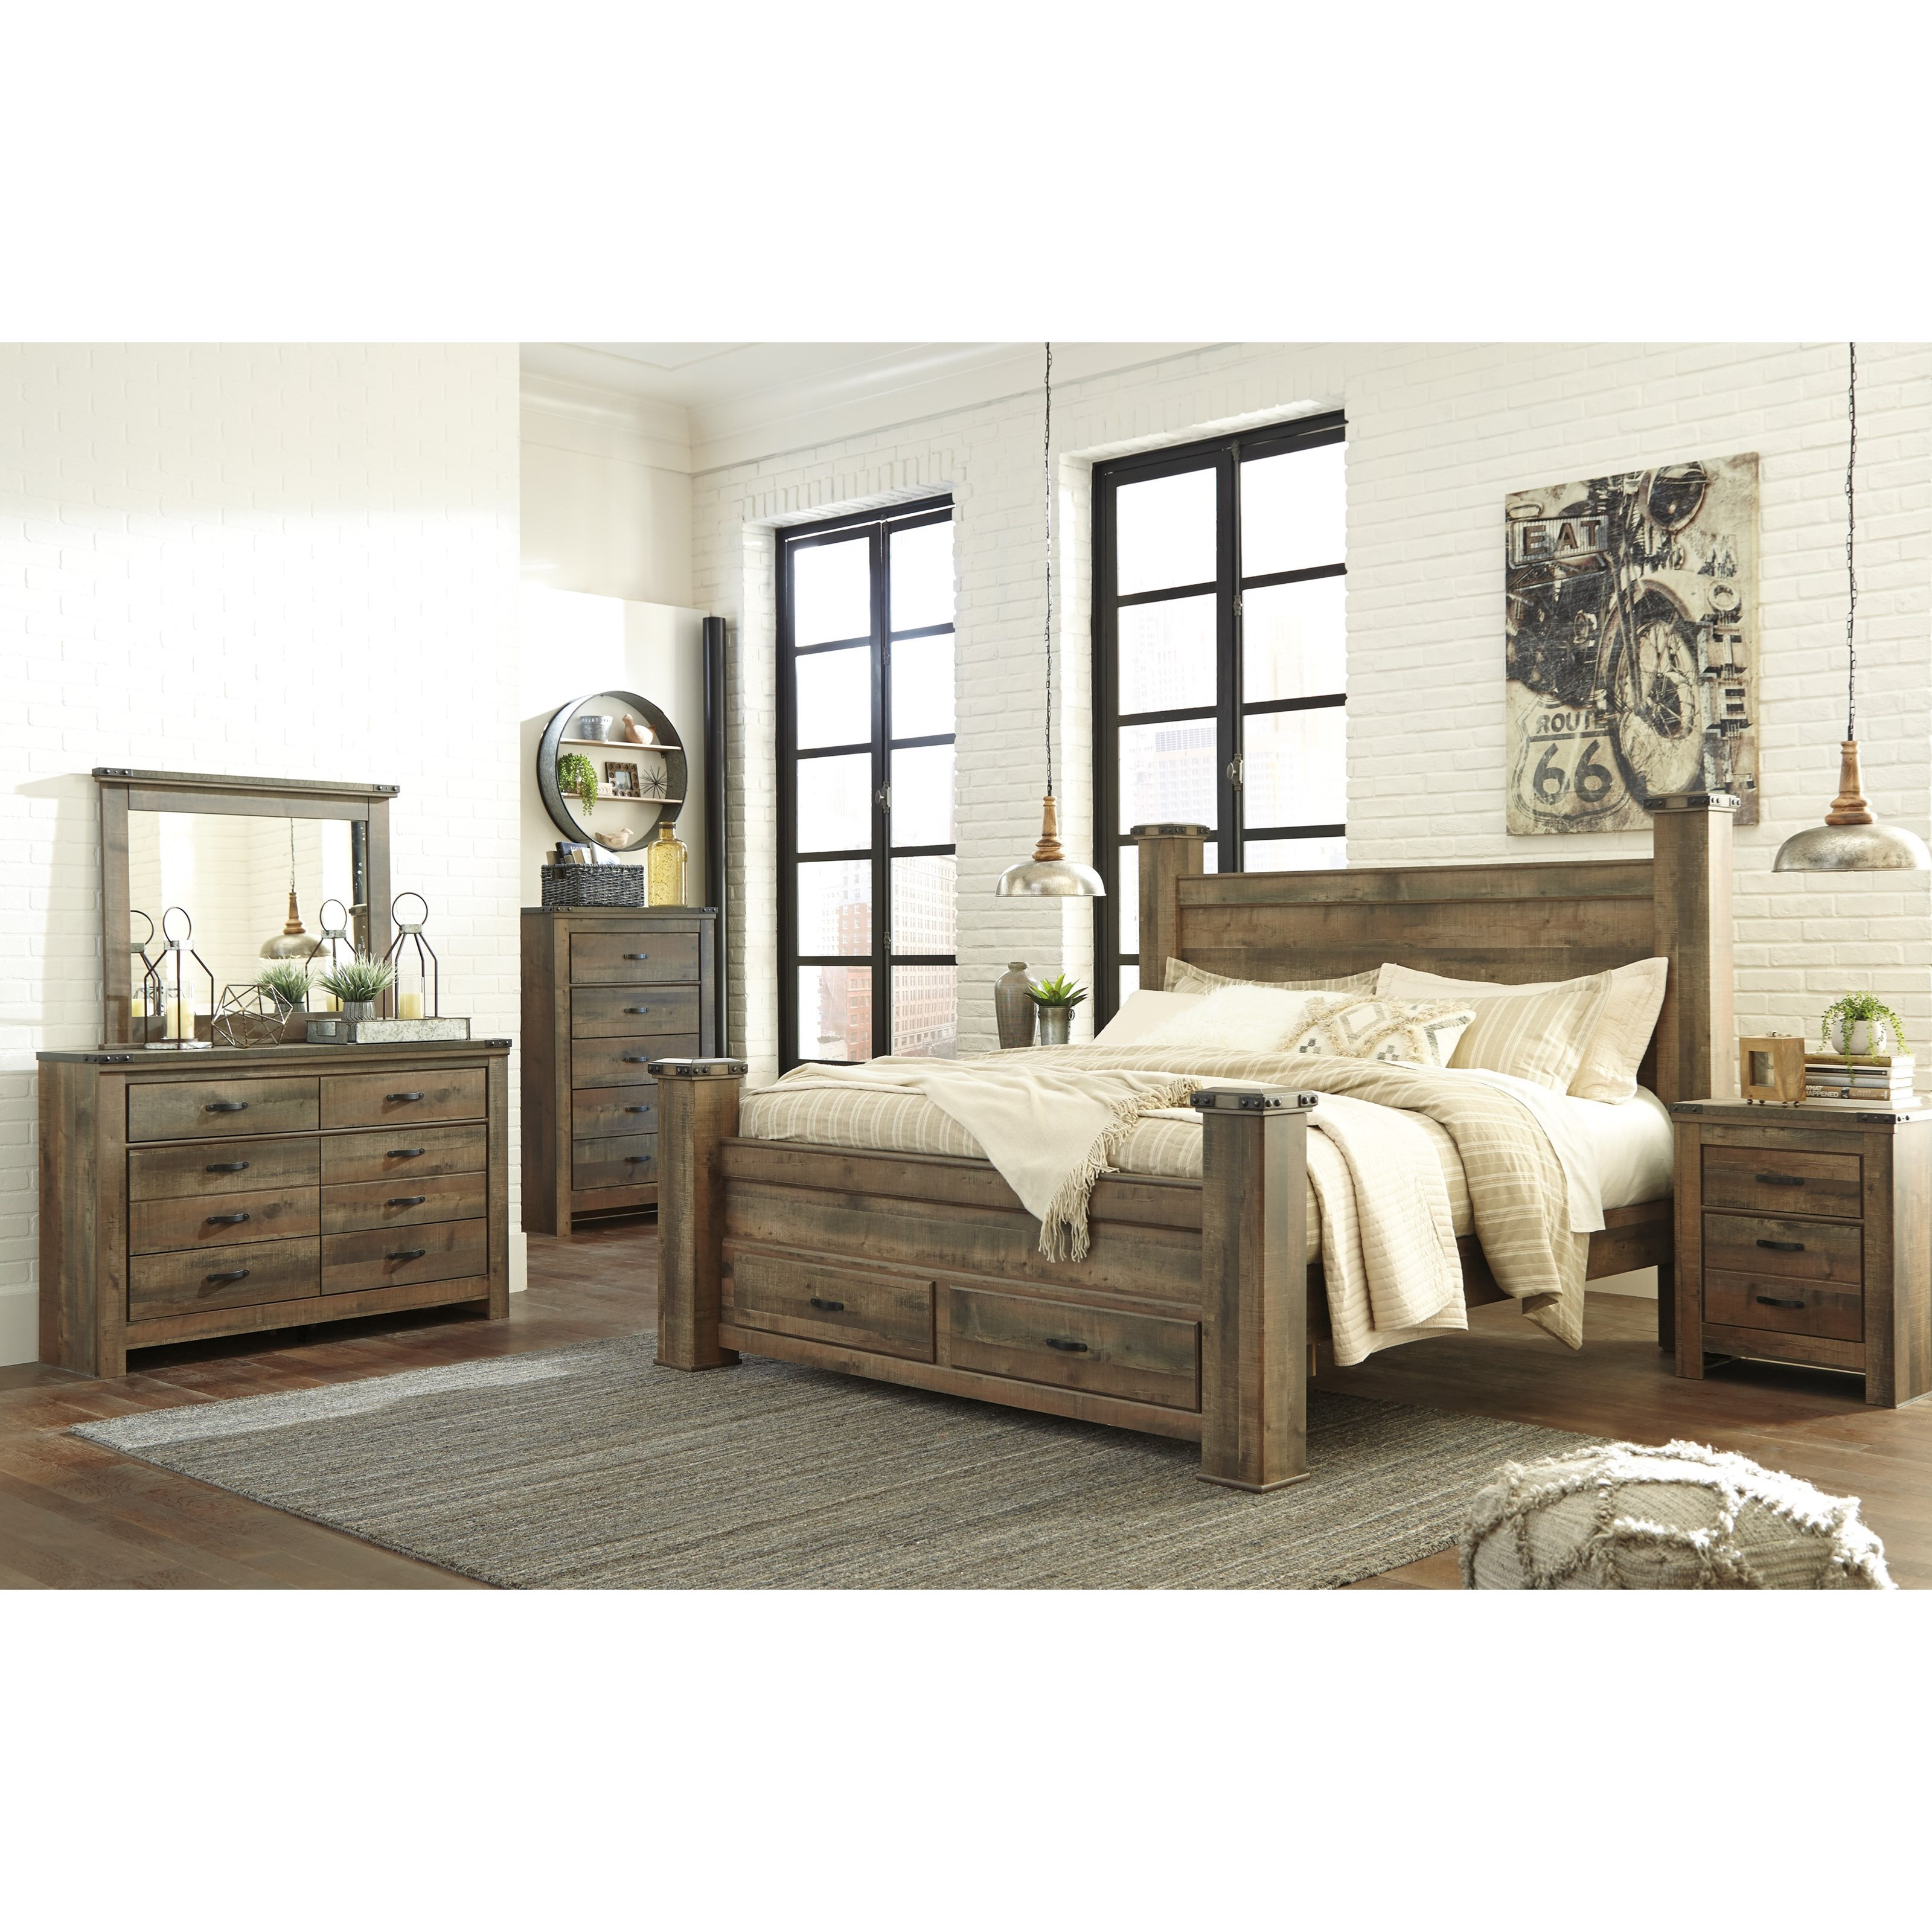 Trinell King Bedroom Group by Signature Design by Ashley at Value City Furniture